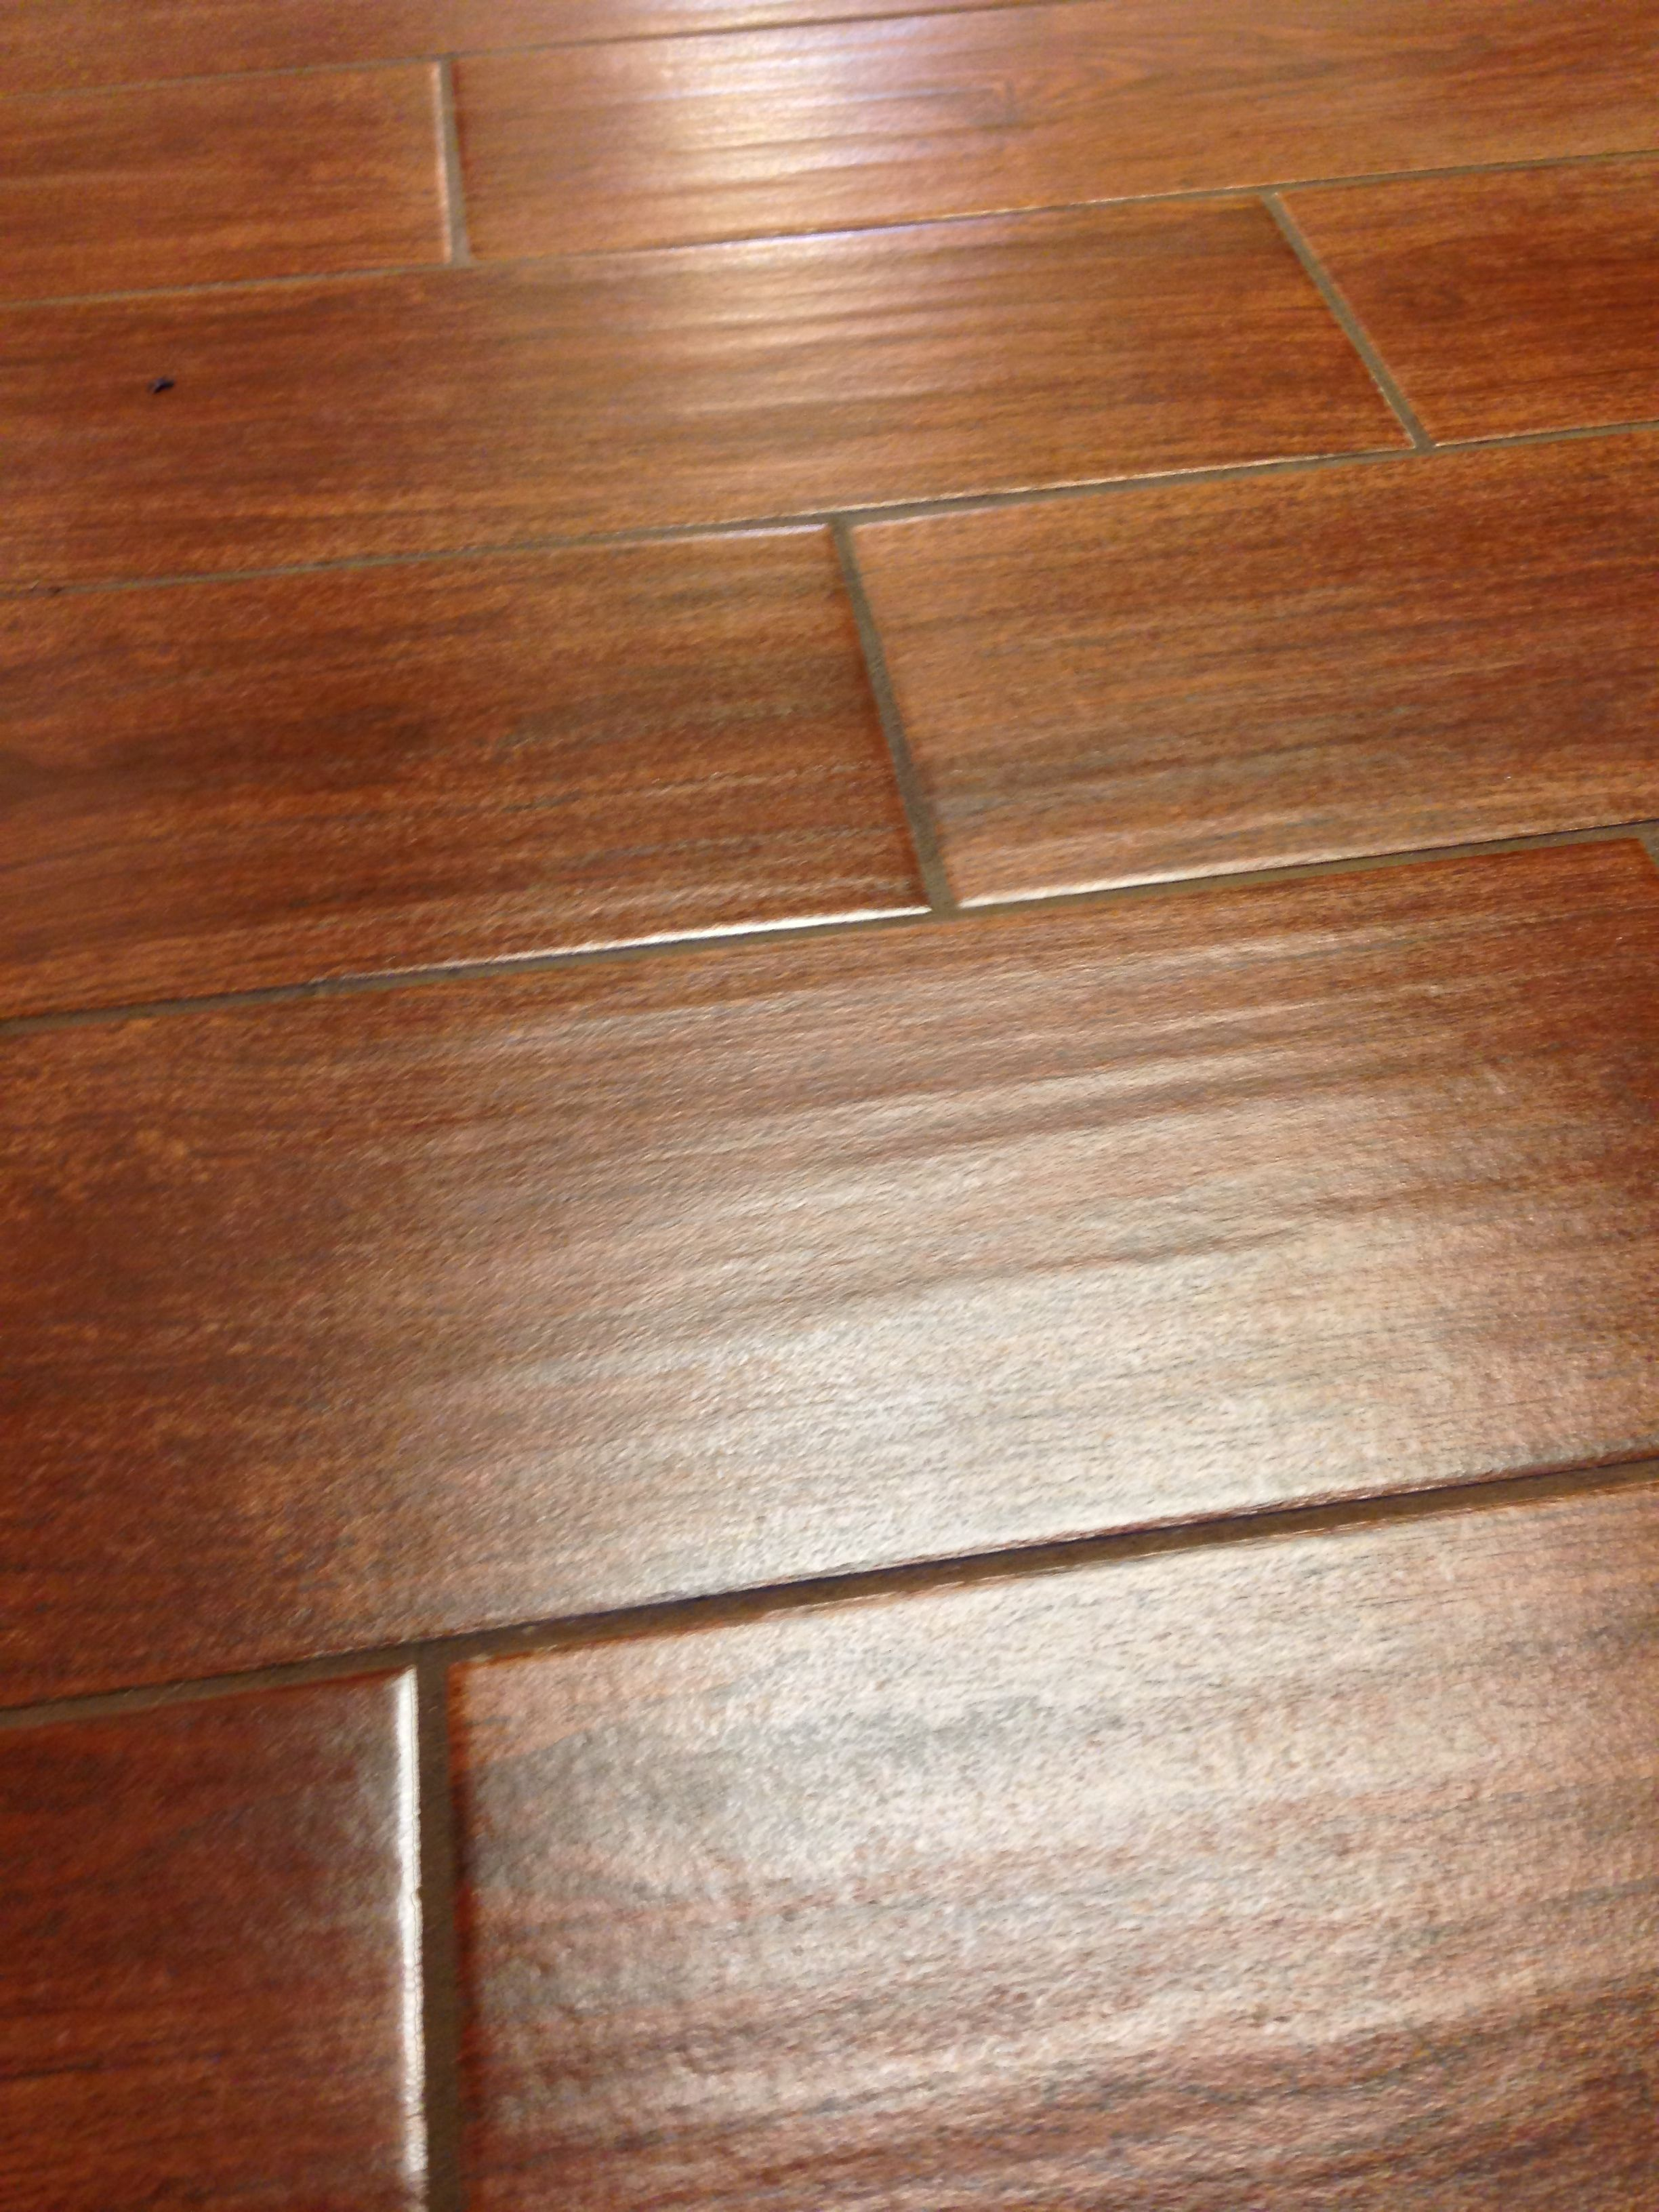 Wood look tile close up columbia missouri bathroom remodel tile shower specialistscolumbia Wood tile flooring